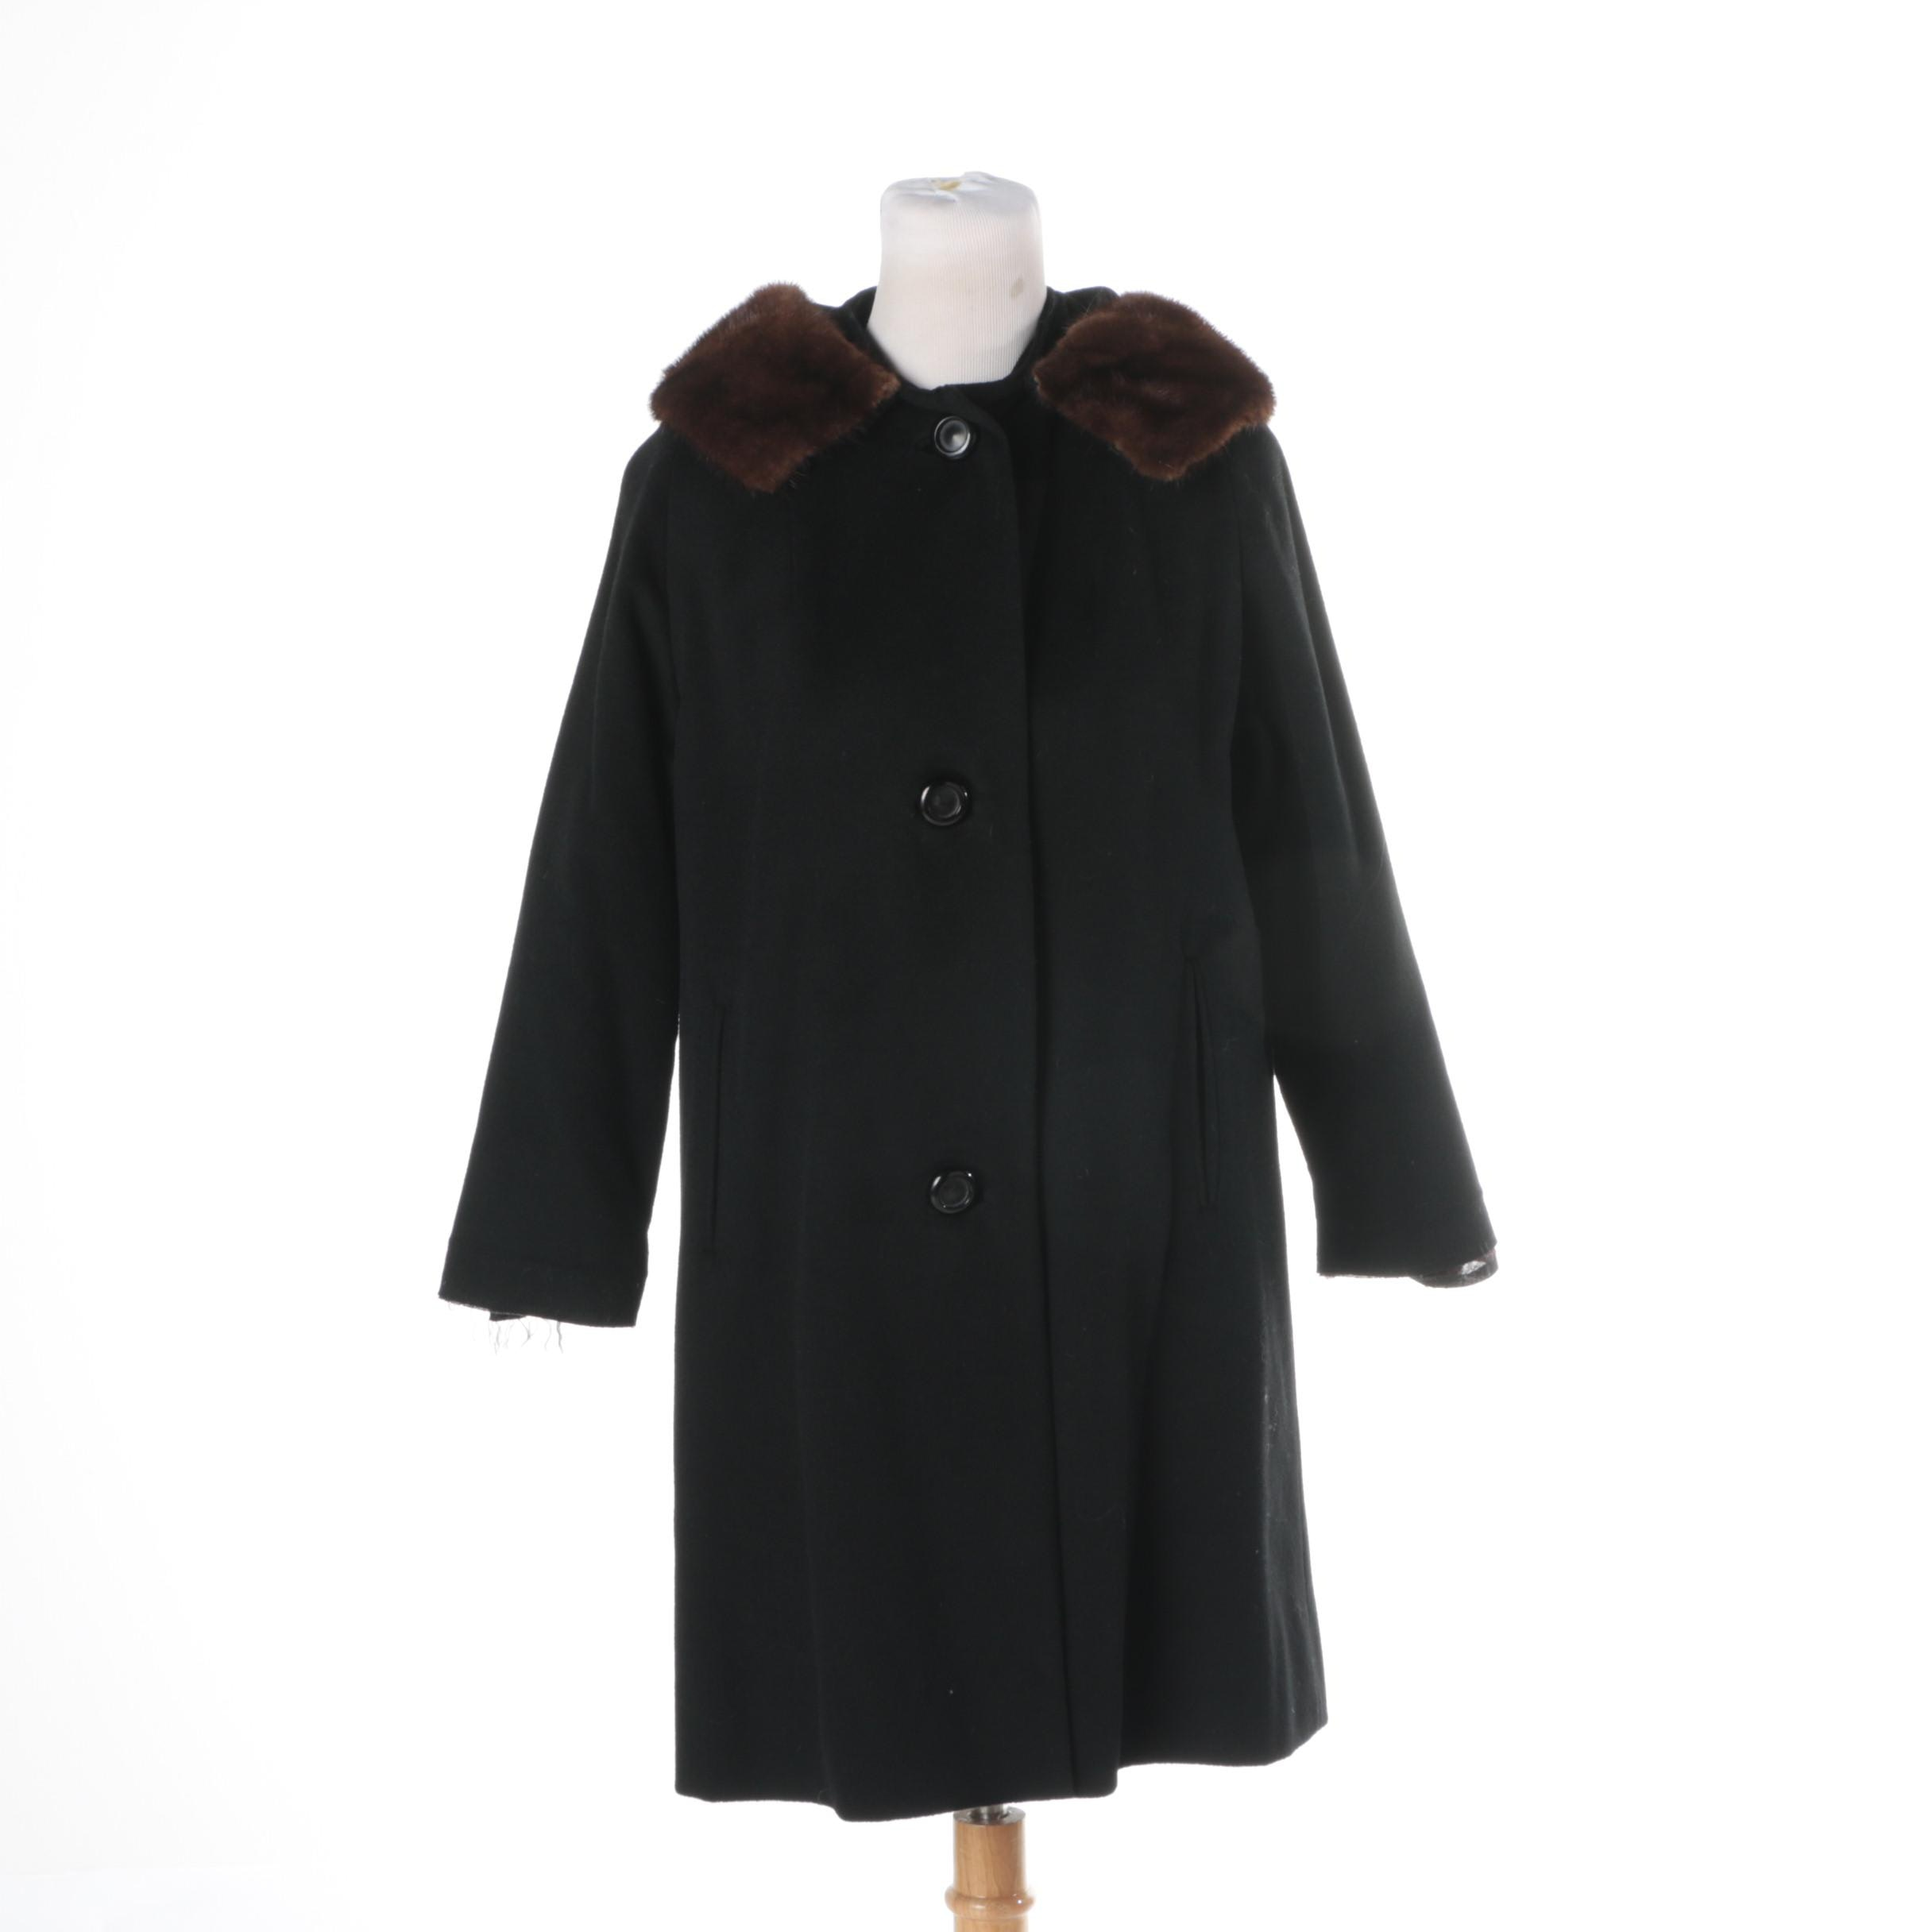 Women's Vintage Cosmopolitan Black Wool Coat with Mink Collar